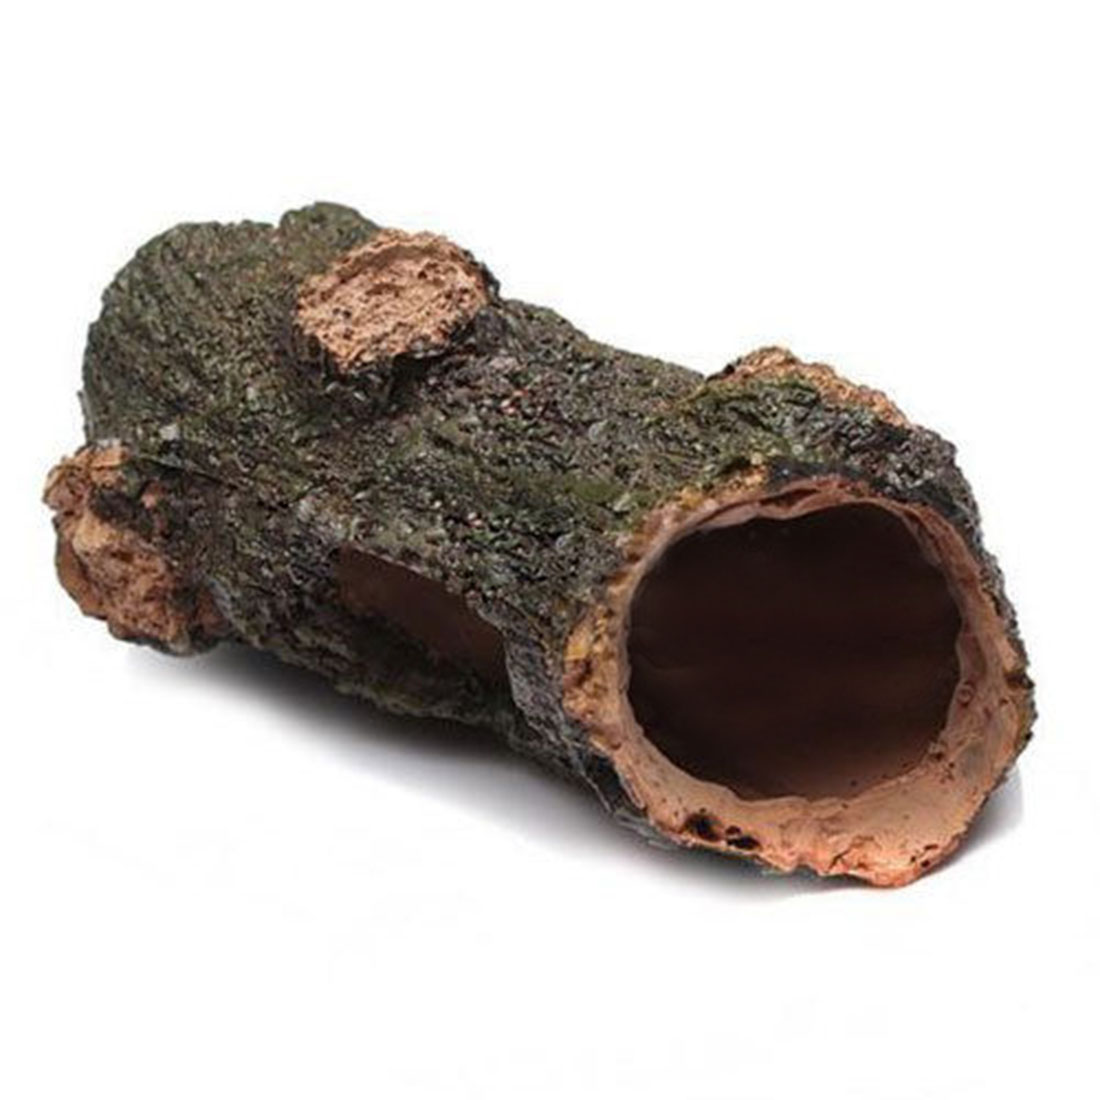 Fish tank wood - Aliexpress Com Buy Ornament Simulation Decoration Polyresin Hollow Trunk Tree Log Wood Fish Tank Aquarium From Reliable Aquarium Gems Suppliers On Super